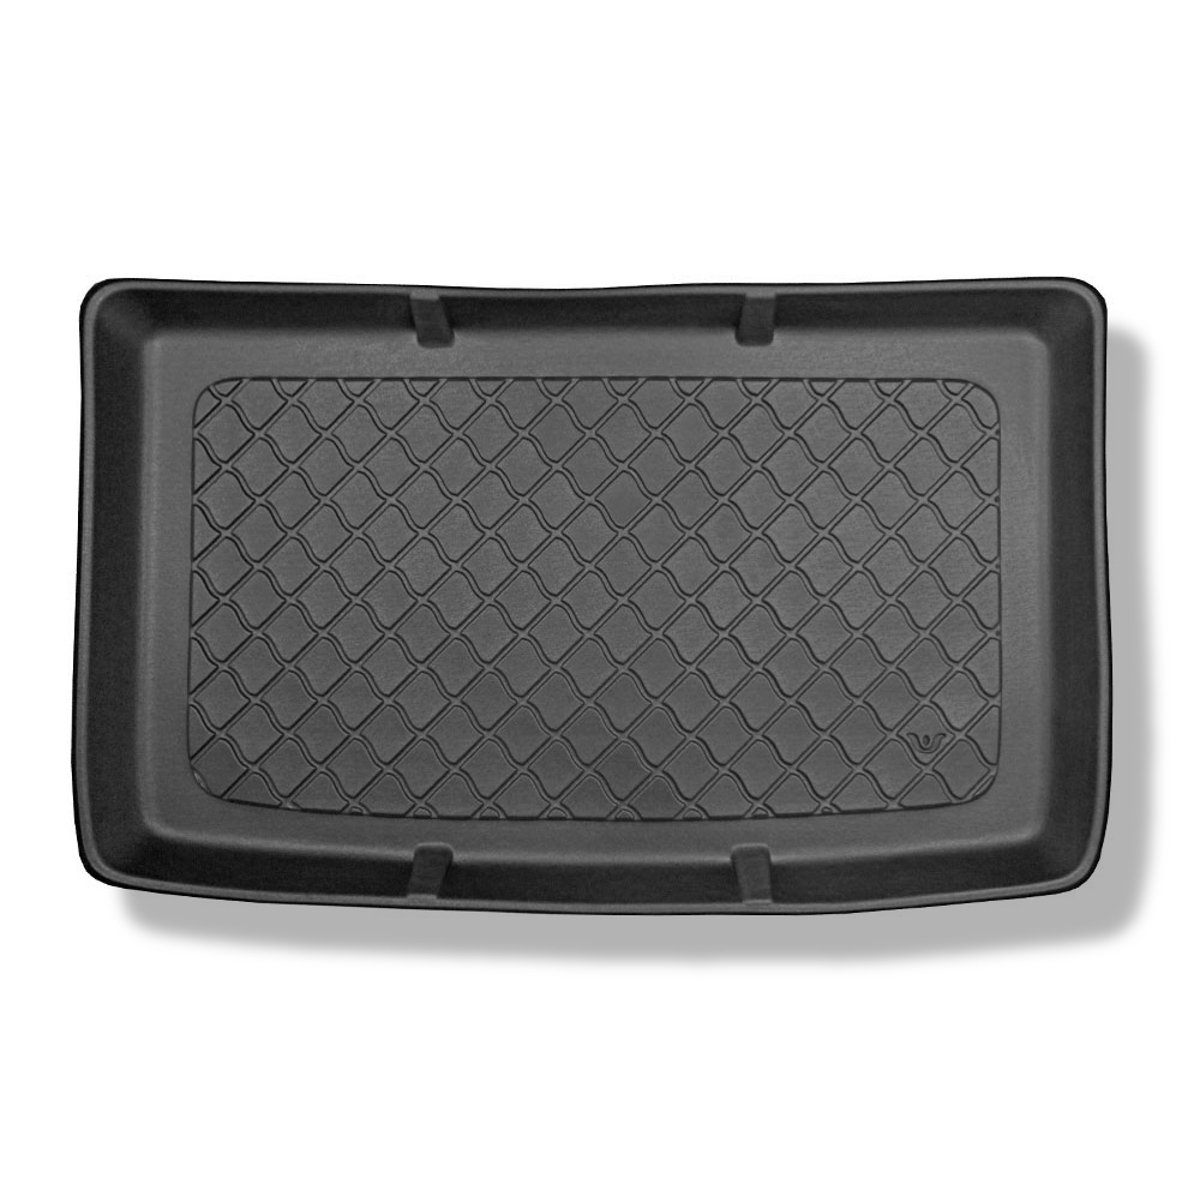 boot liner Fits perfectly Odourless 5902538555982 Mossa Car trunk mat